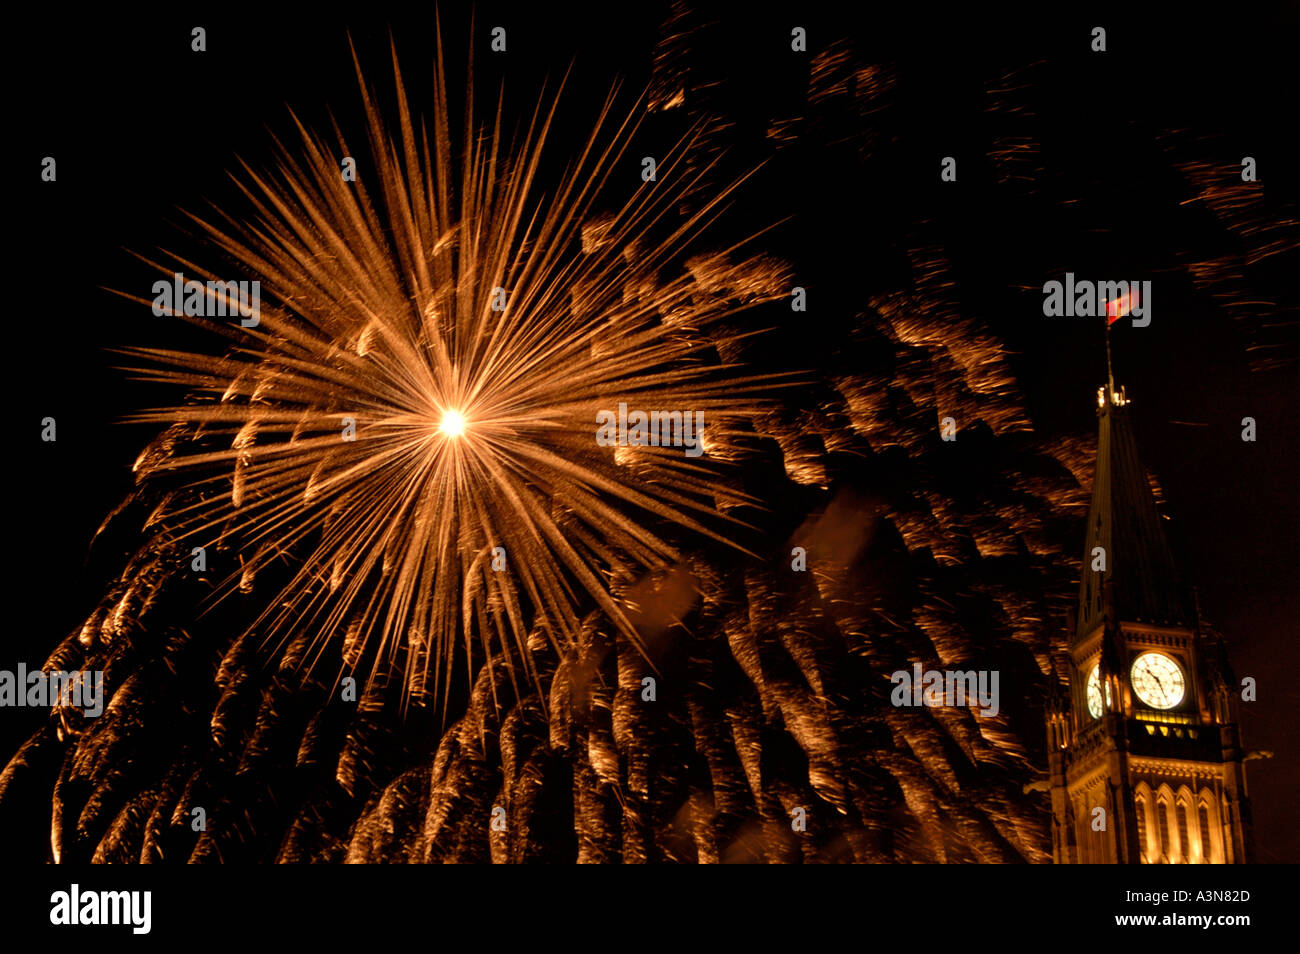 Fireworks 2004 Stock Photos & Fireworks 2004 Stock Images - Alamy